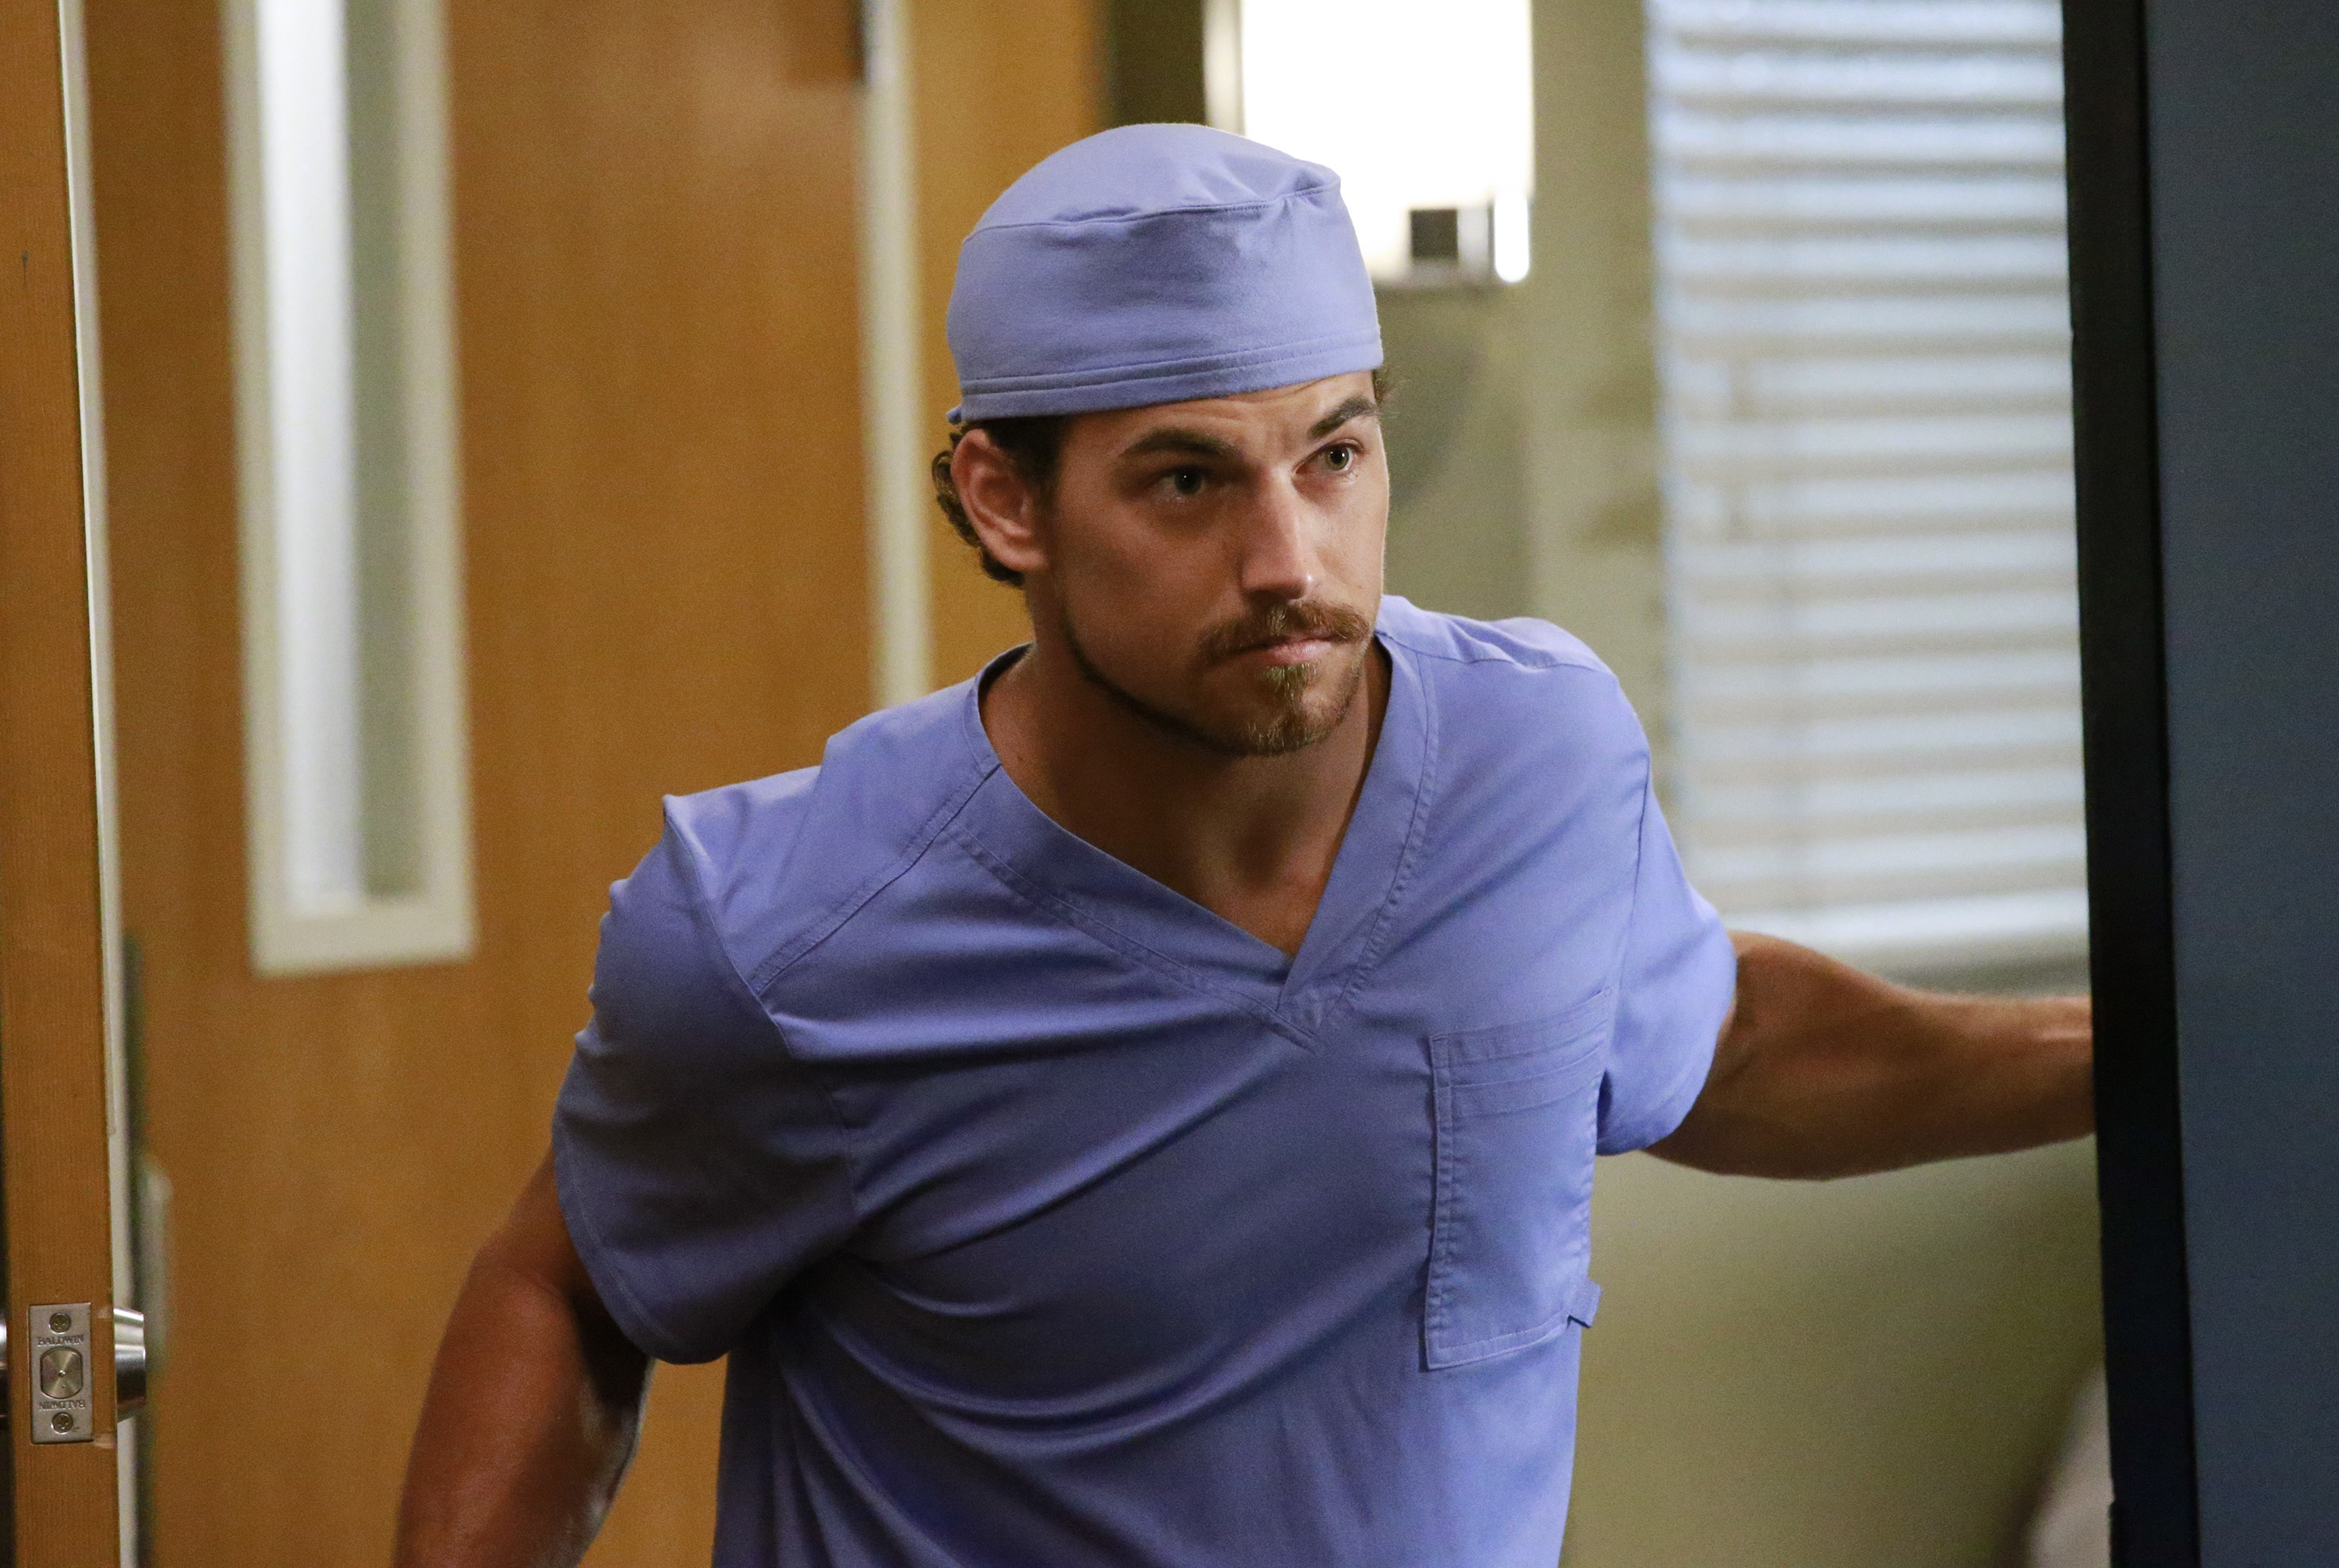 No. 7: Dr. Andrew DeLuca